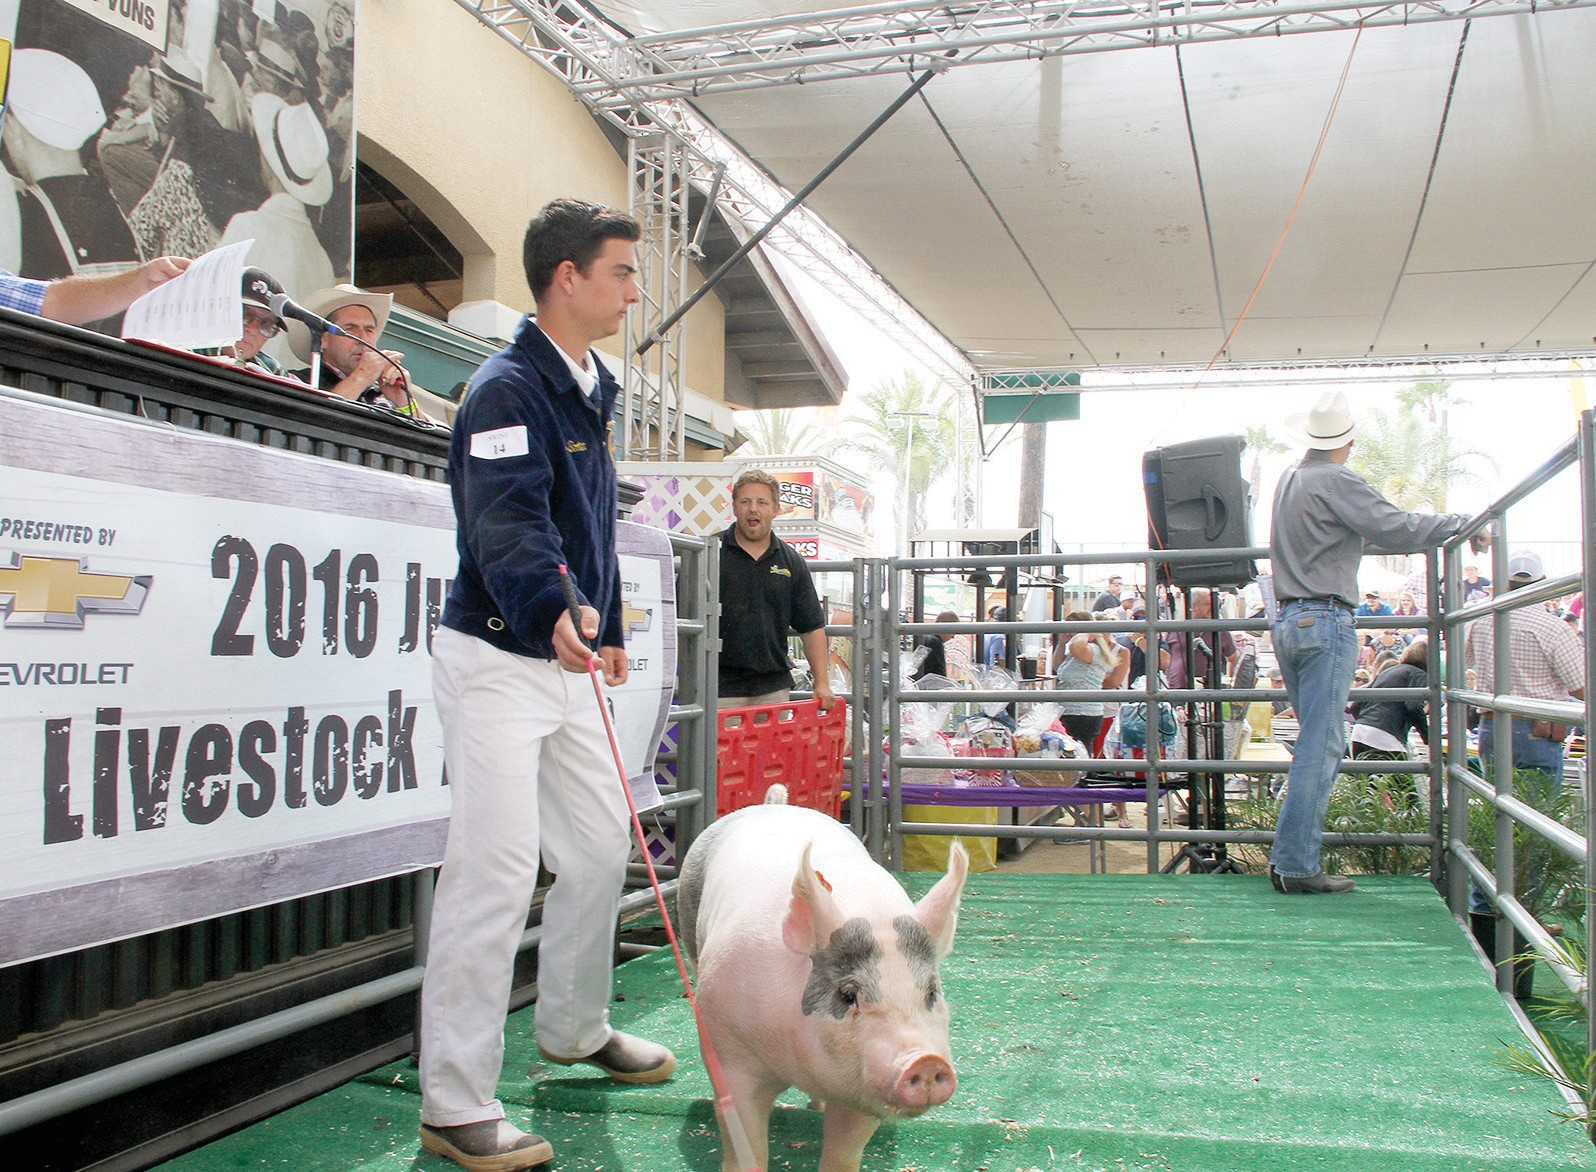 Escondido FFA member Drake Booten guides his 239 lb. pig around the auction block while bidding takes place. Photo by Carla Van Wagoner